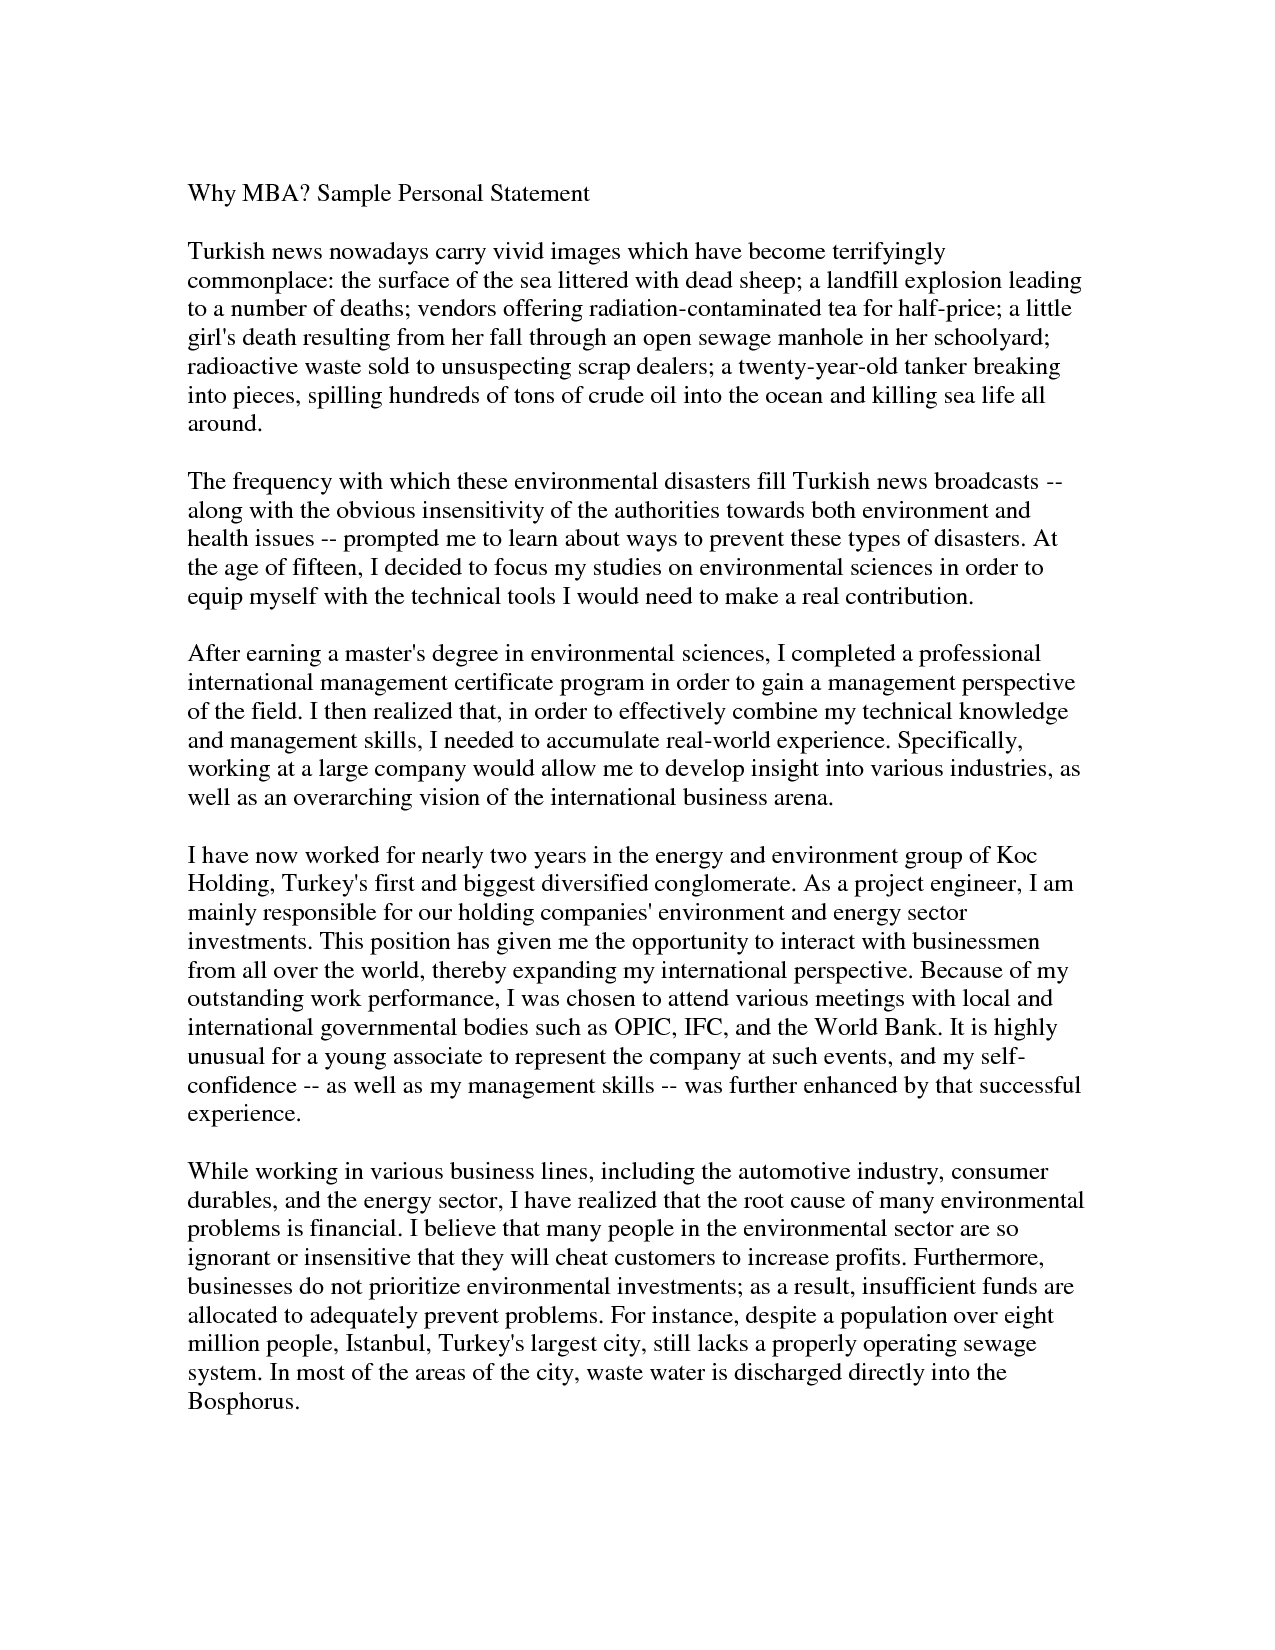 personal statements essays Personal statement examples for graduate school writing a personal statement for graduate school may at first seem like an overwhelming task it sets the tone for your grad school application after all while every personal statement should be different, these examples can help you brainstorm ideas and give you a place to start.